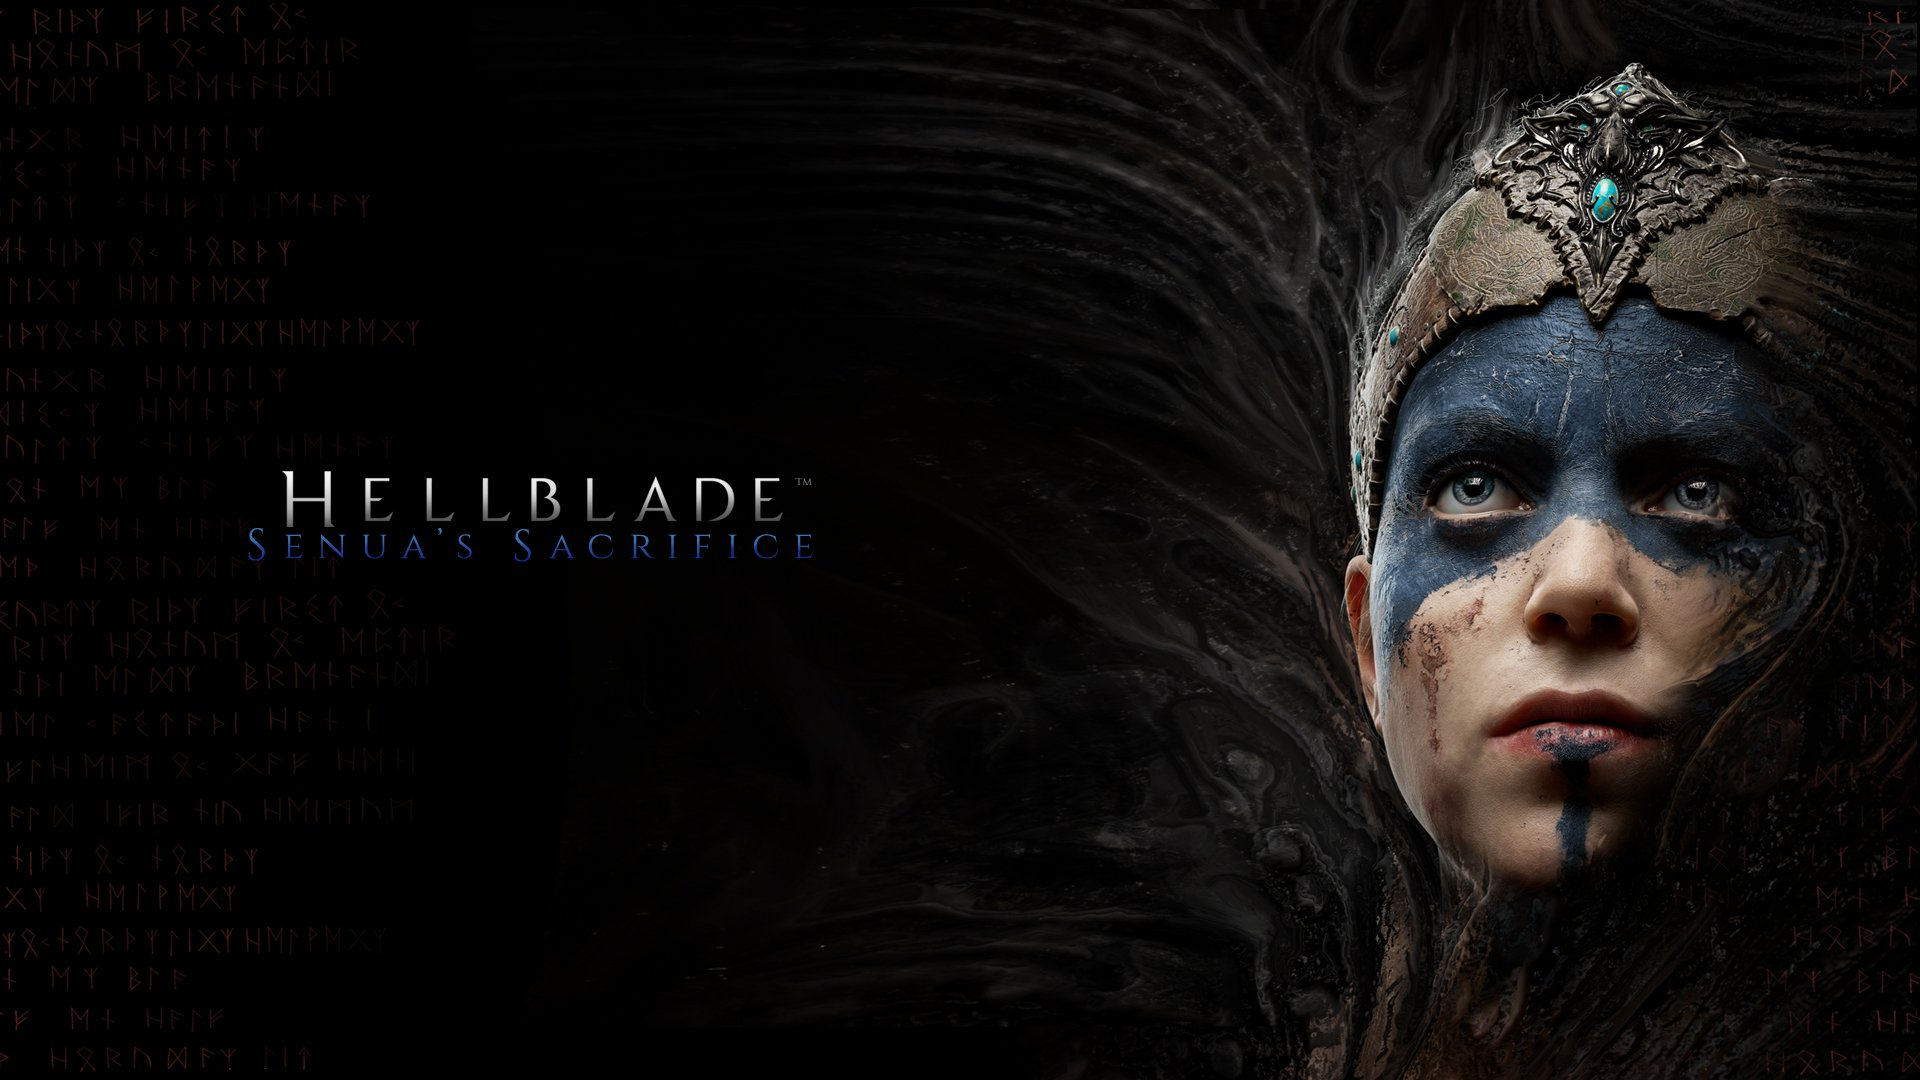 A reply to Mic.com's: 'Hellblade' tries to show the real experience of psychosis – but ends up using it as a plot device.